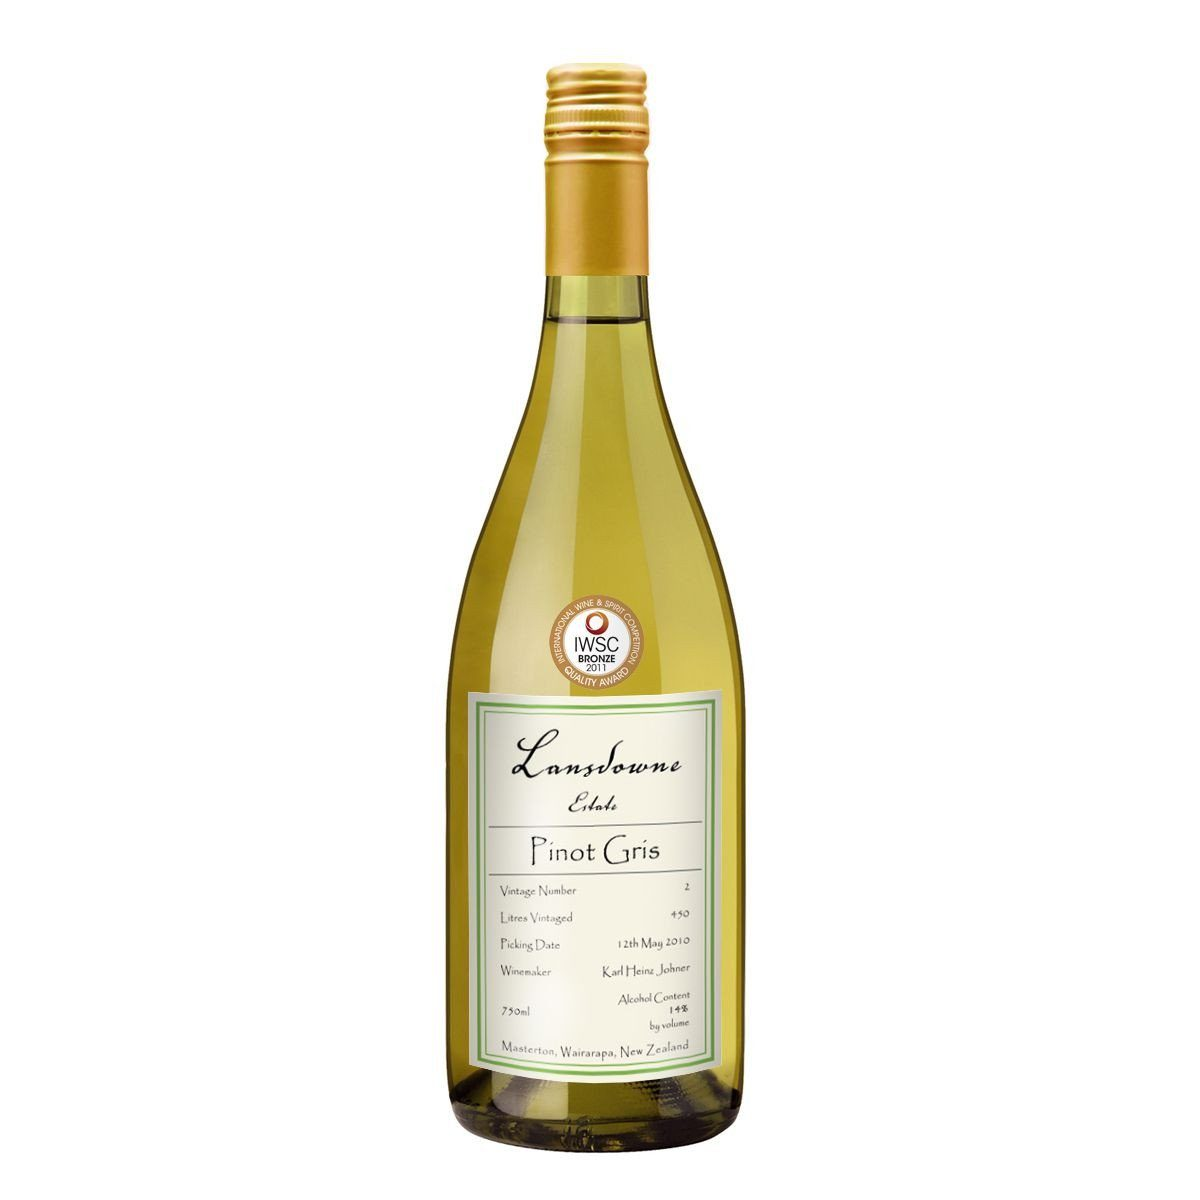 Landsdowne_estate_pinotgris_2010